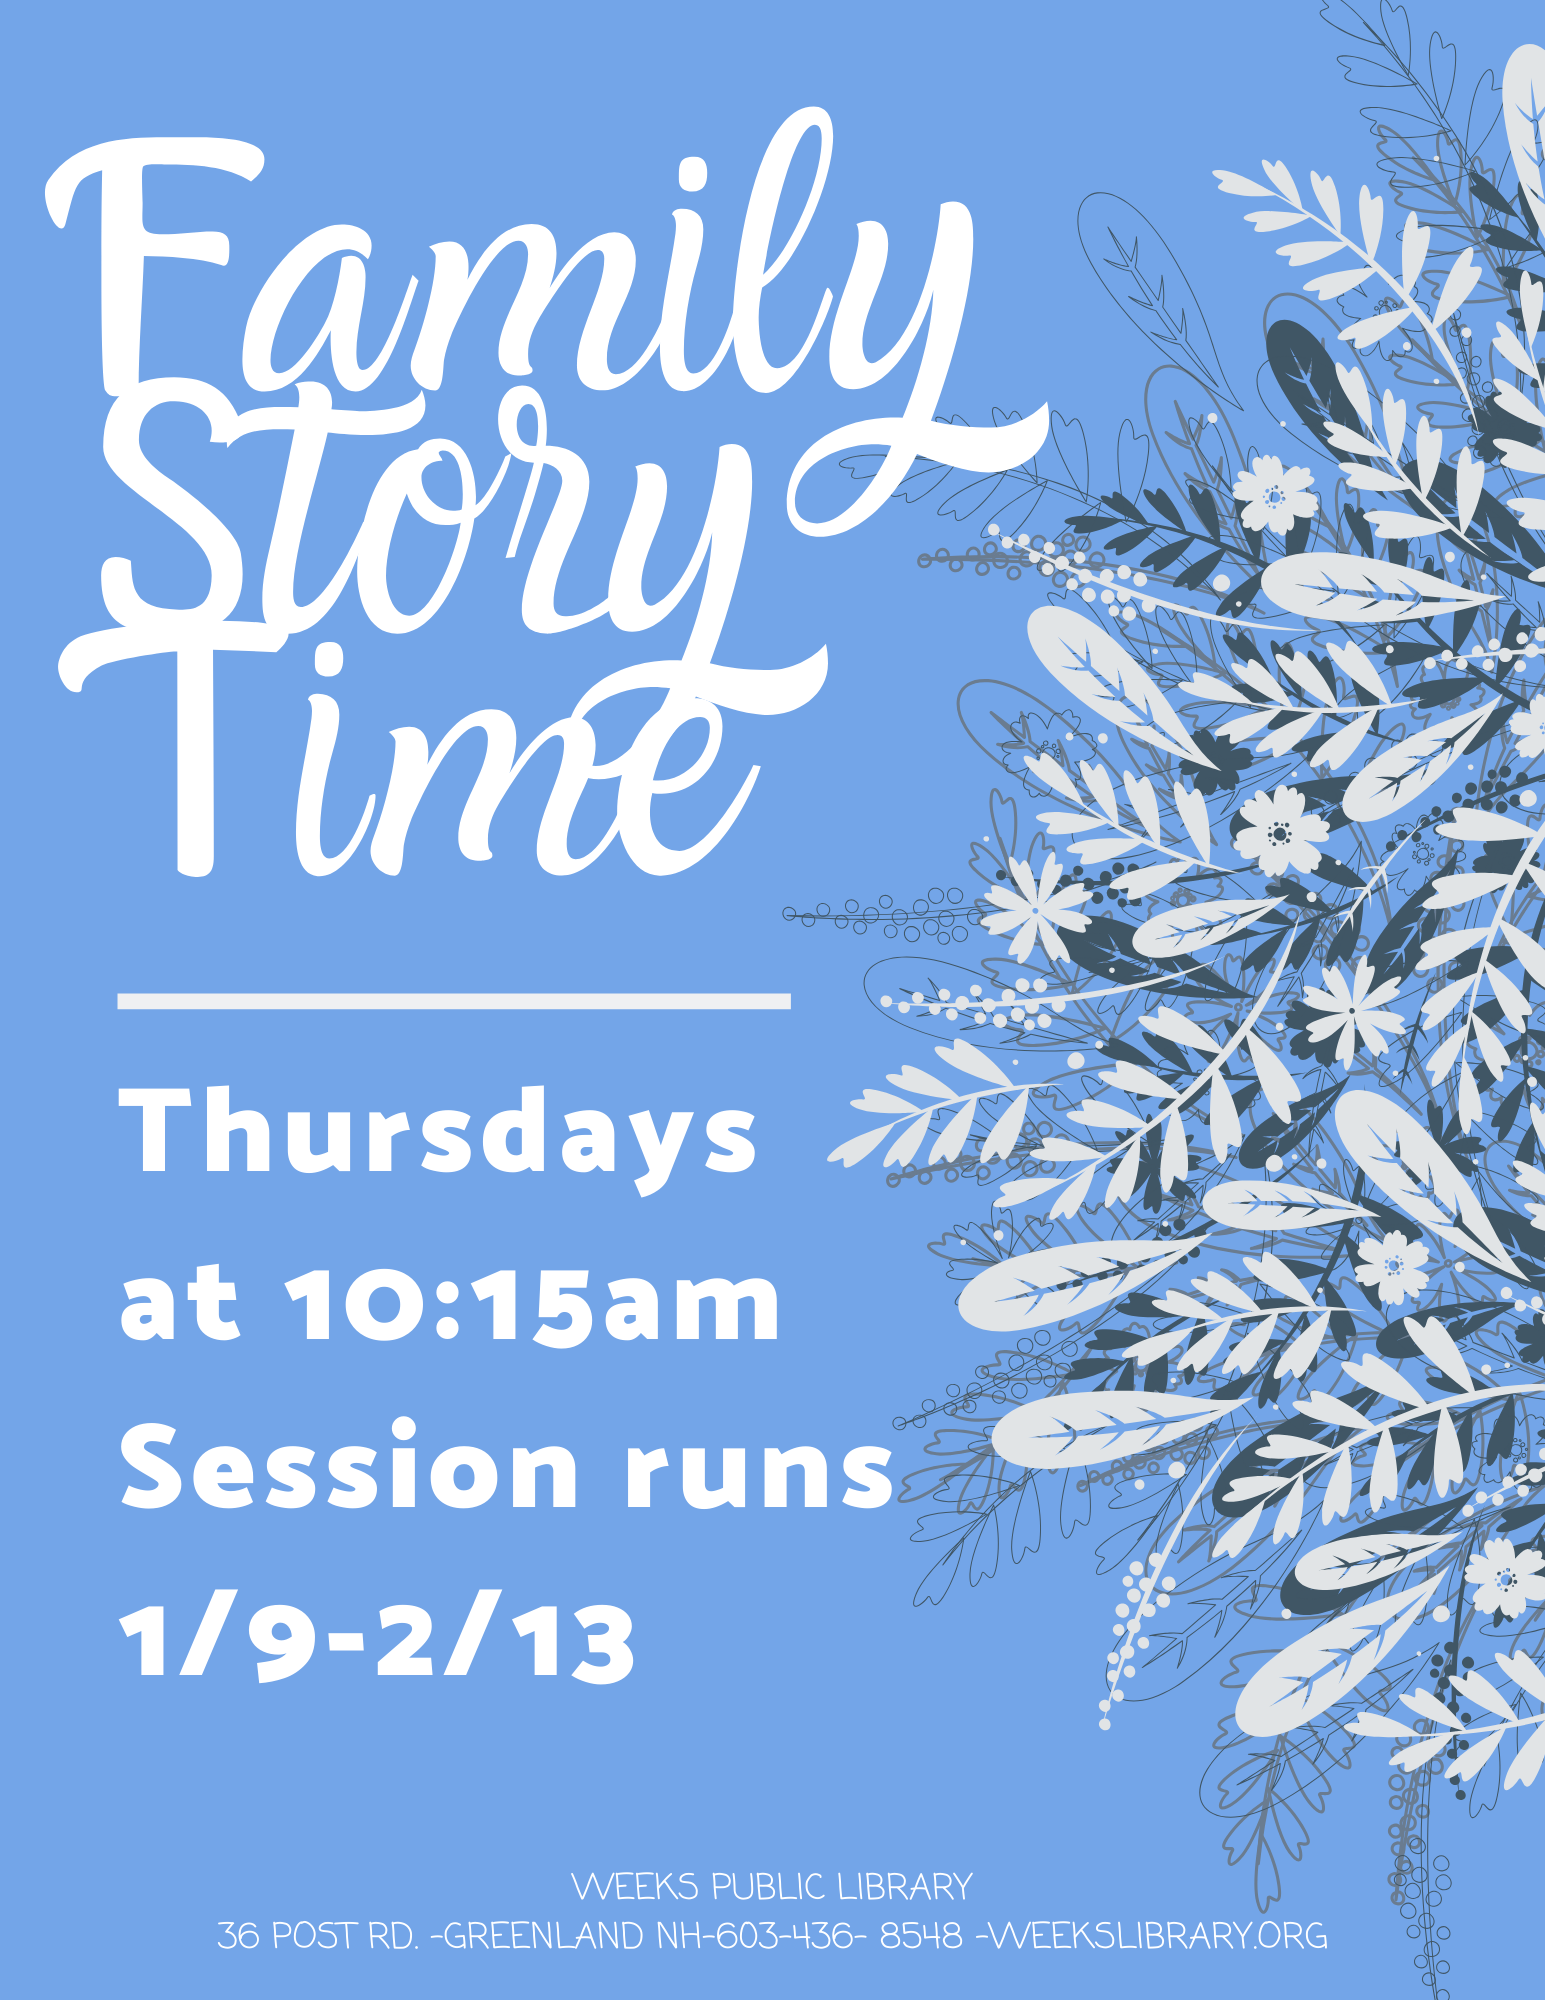 Family Story Time – Weeks Public Library